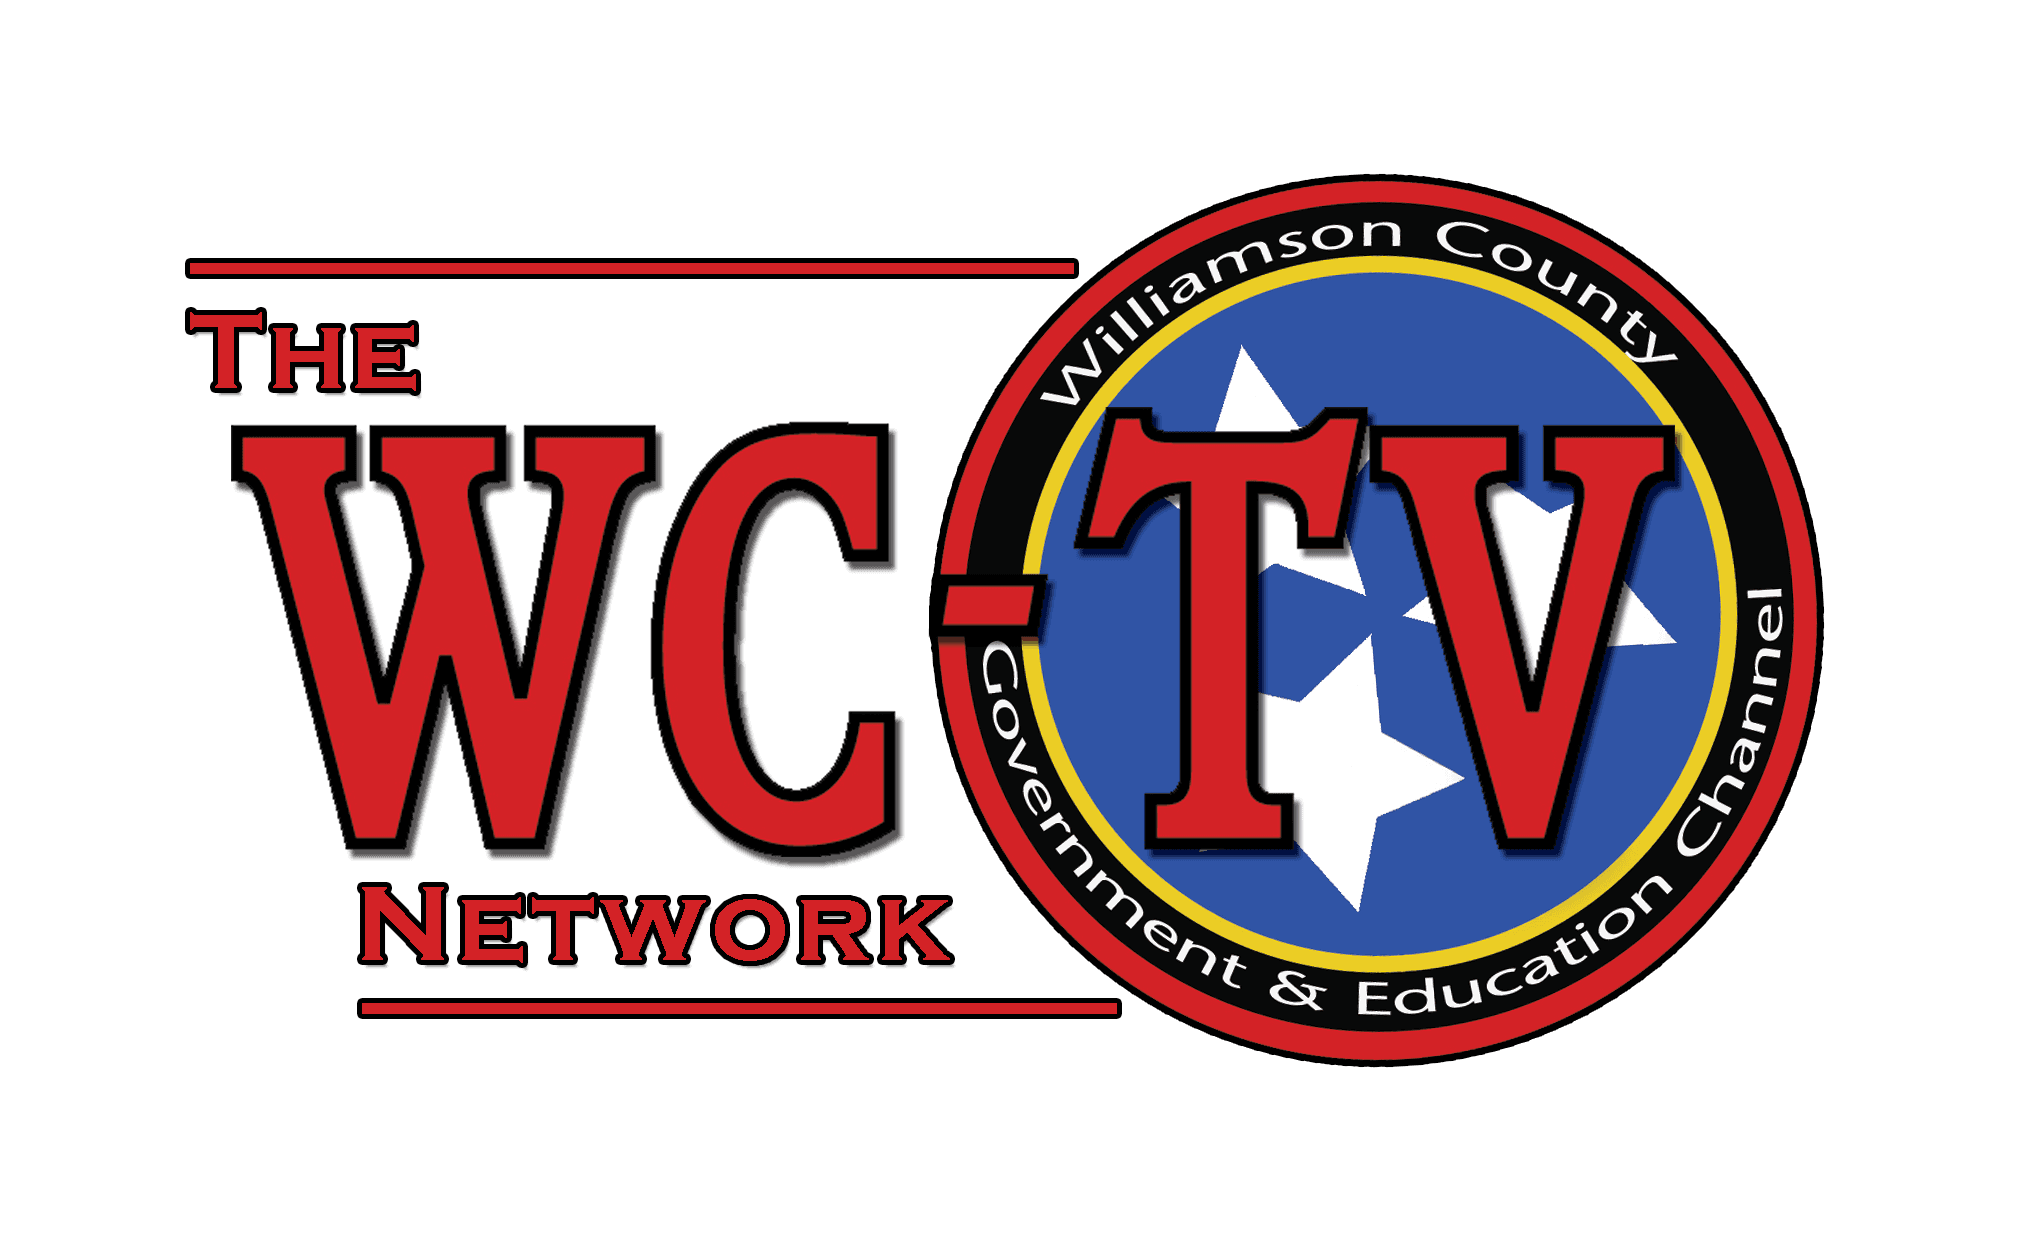 wctv-network-no-bg